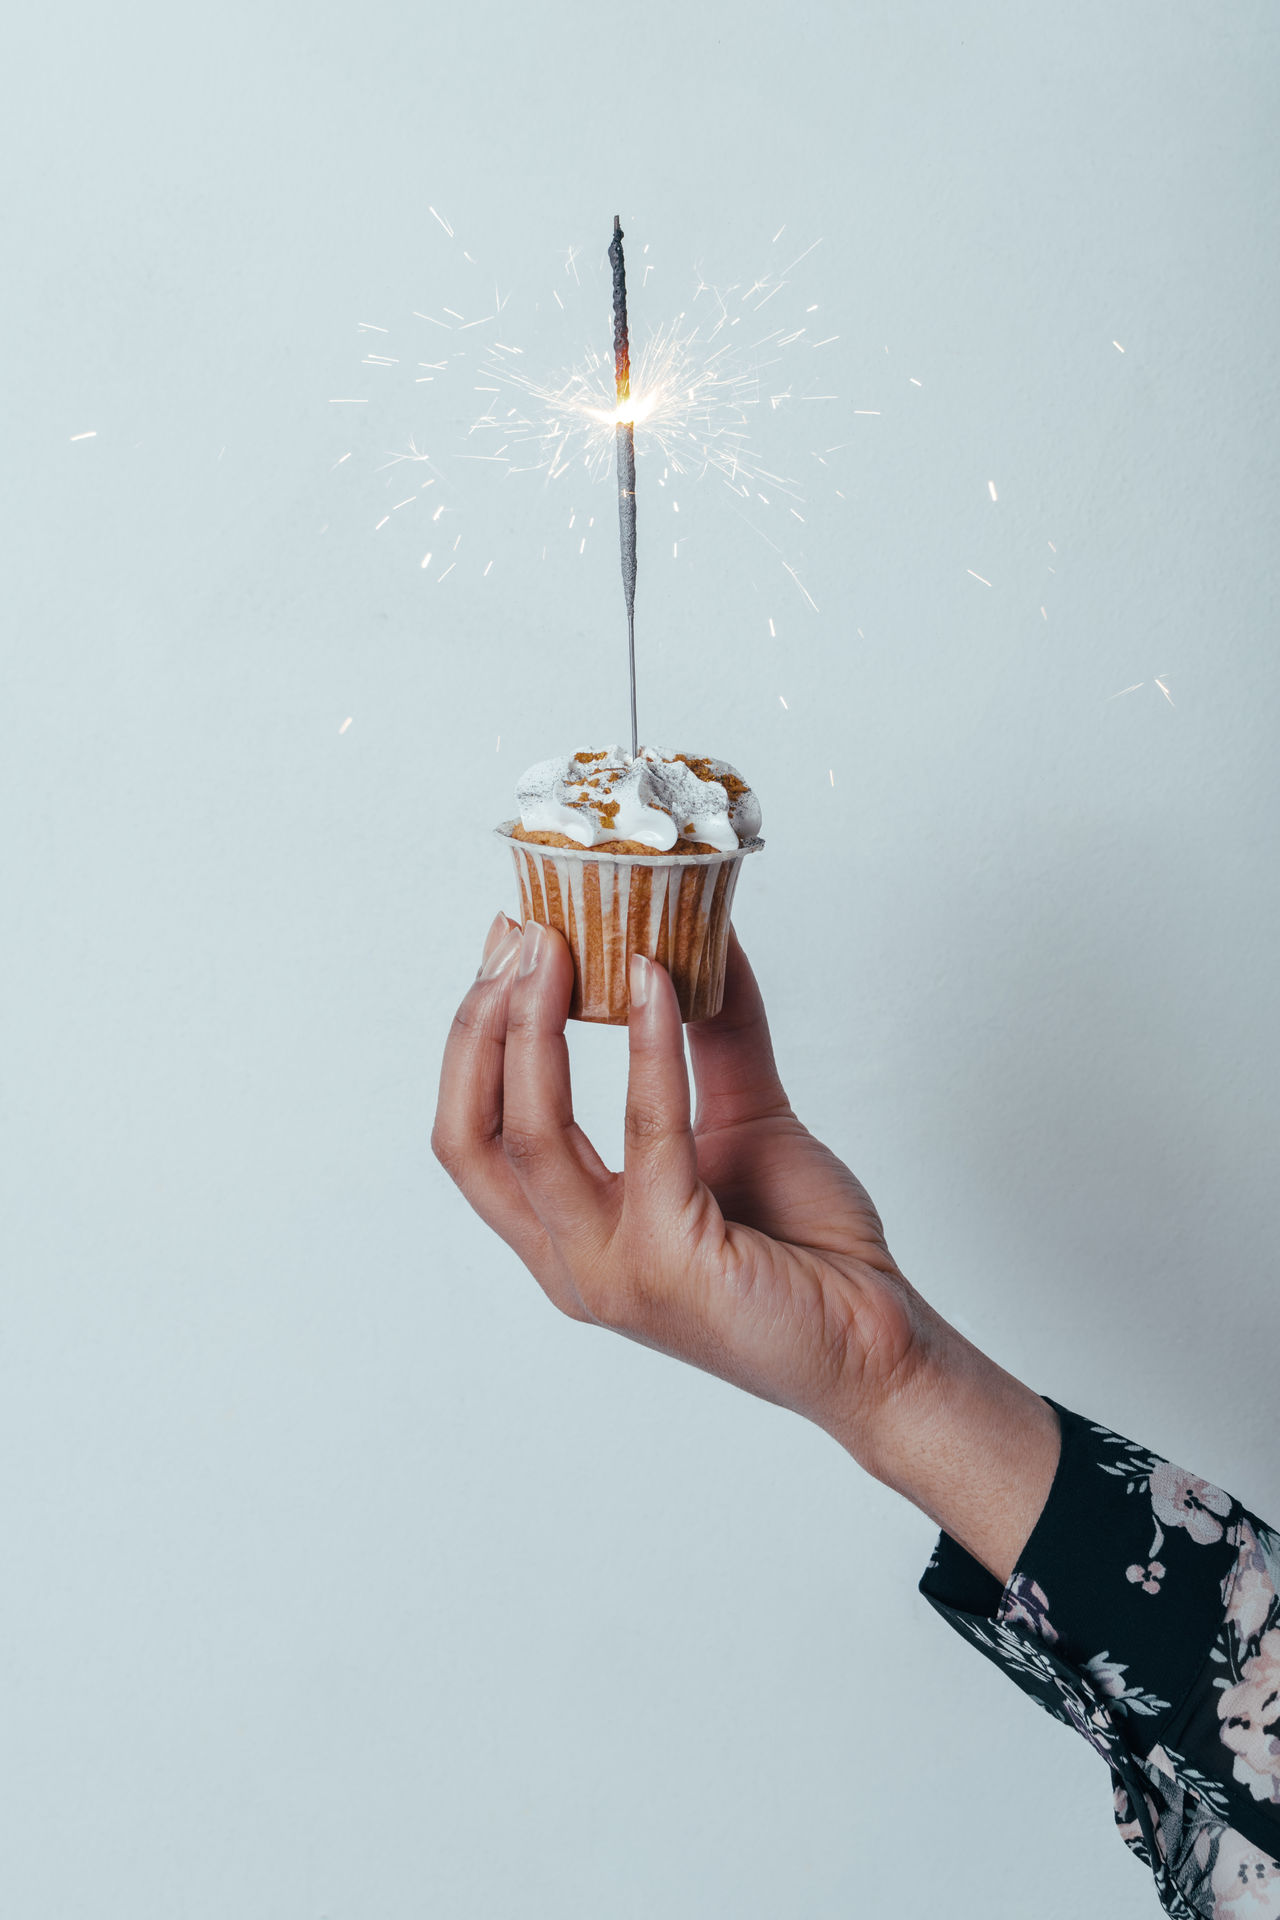 Birthday Birthday Cake Celebrating Celebration Cupcake Cupcakes EyeEm Best Shots Glow Glowing Hand Holding Human Hand Minimalism One Person One Woman Only People Sparkle Sparklers Studio Shot